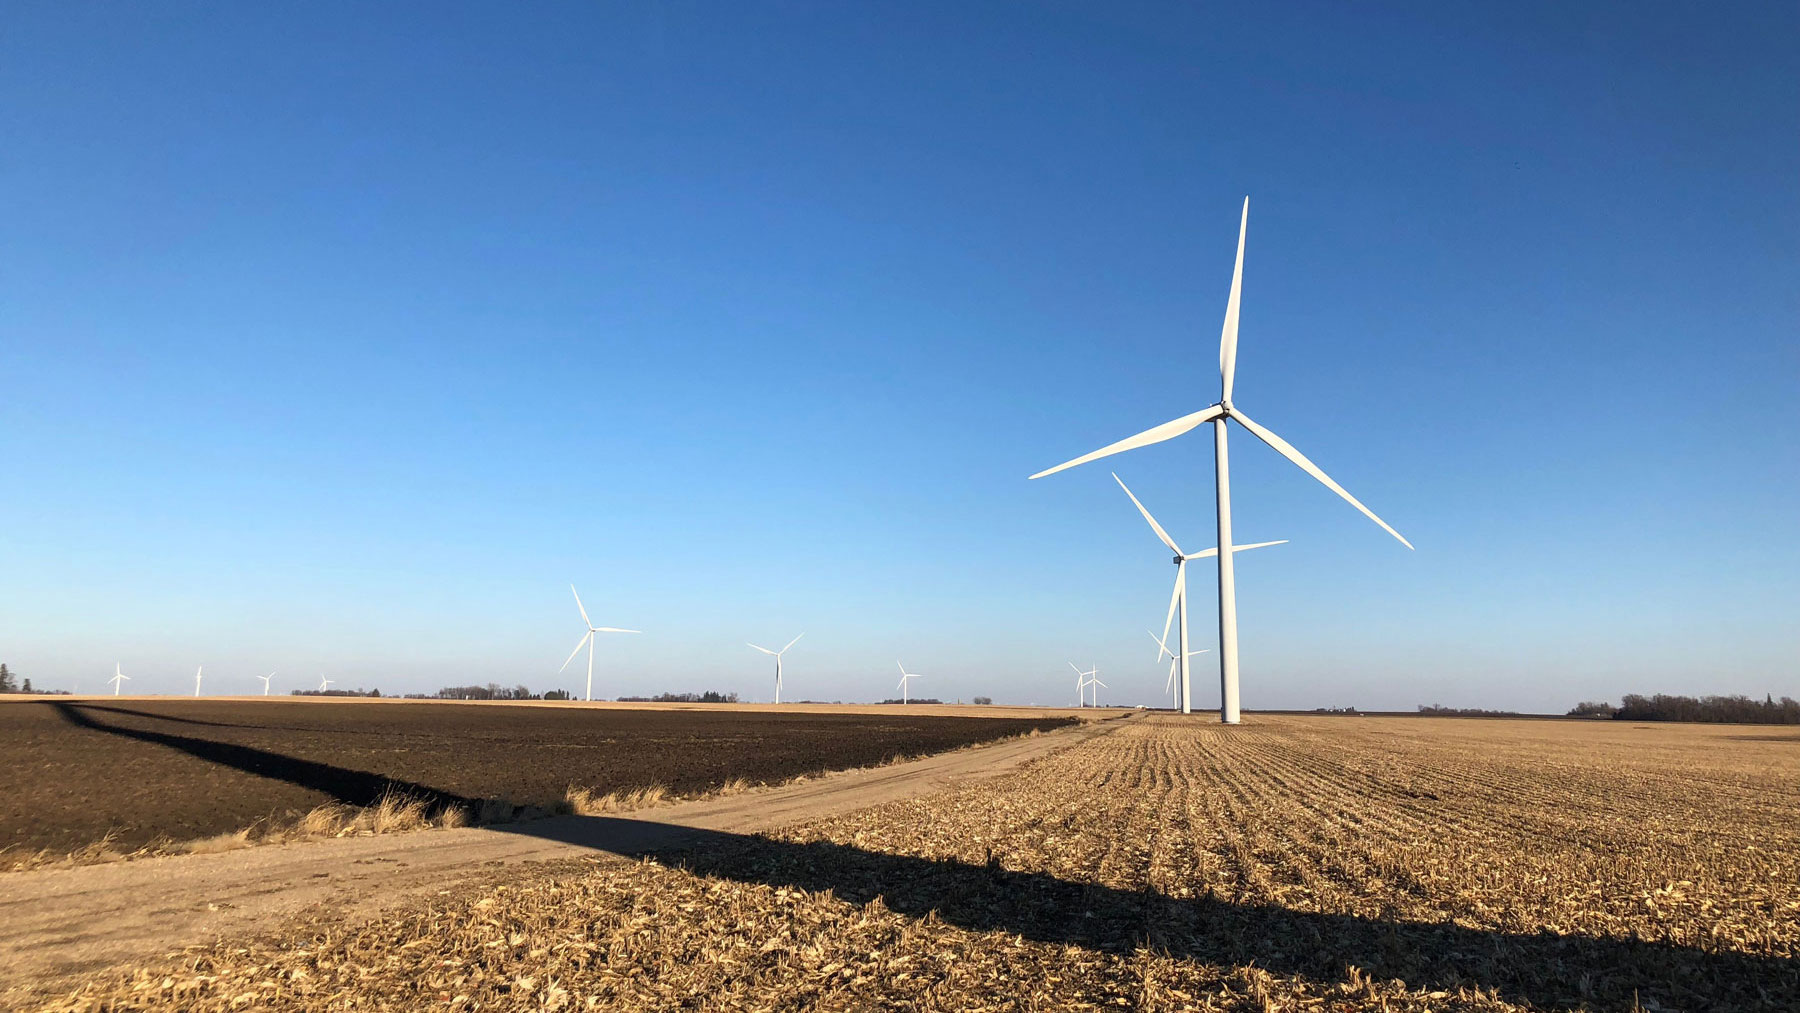 ITOCHU Announces Investment in Kimball Wind and South Fork Wind Projects